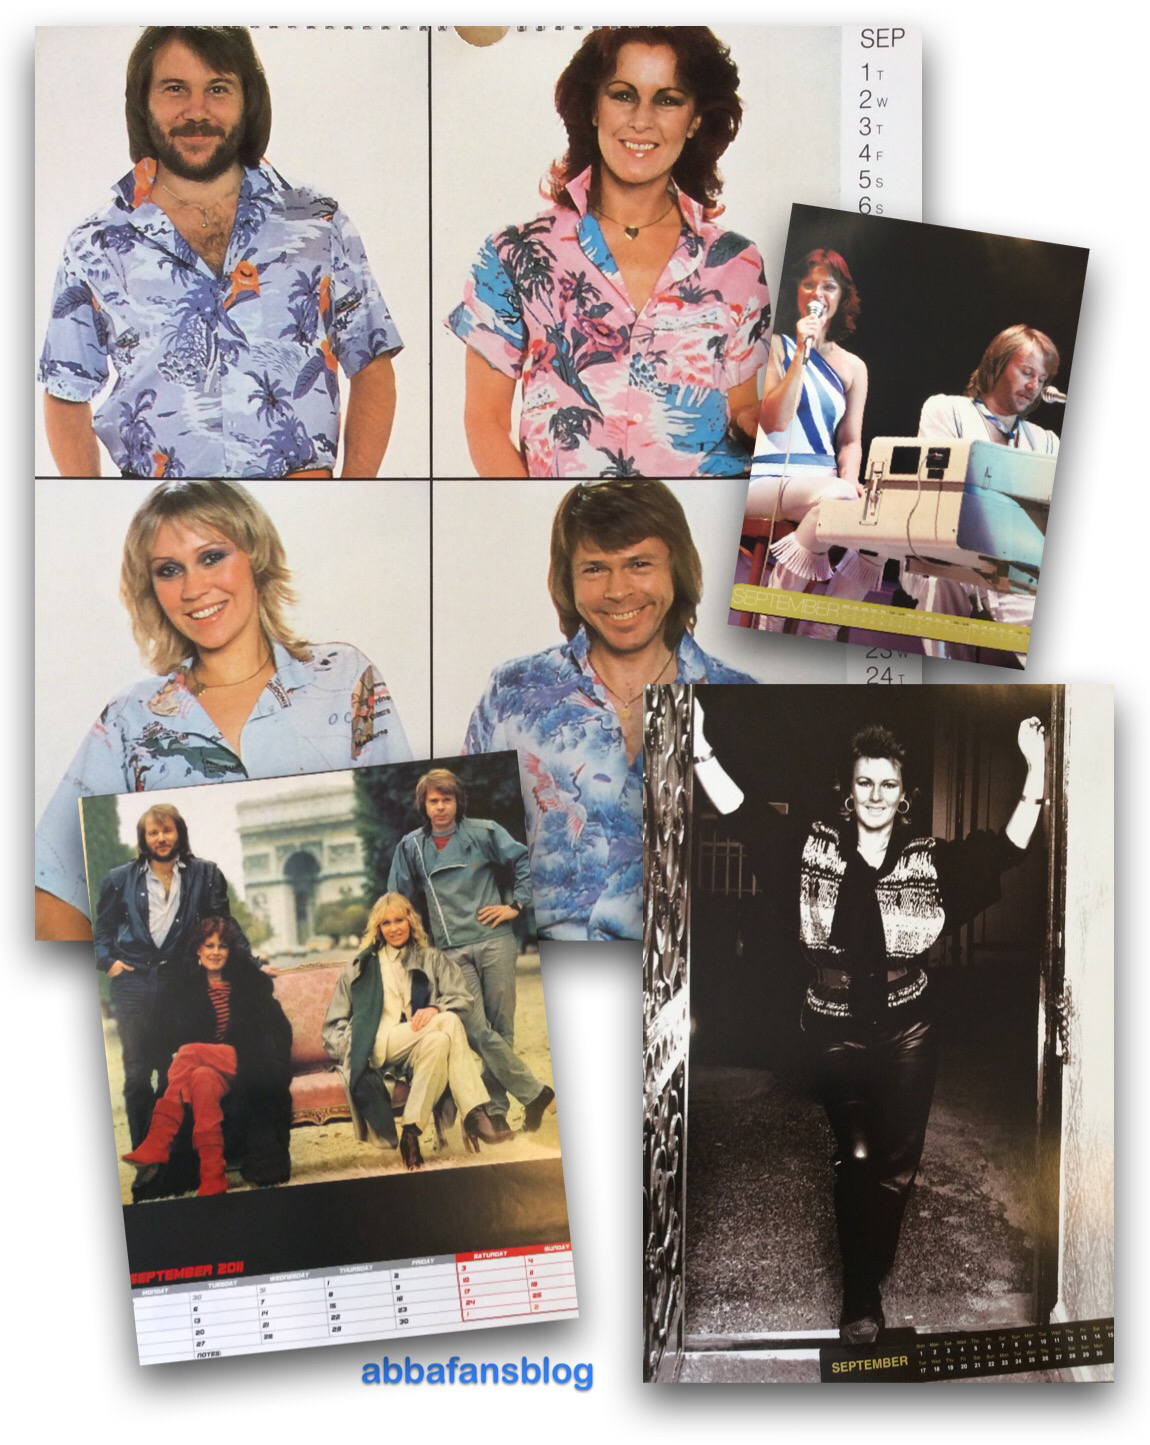 Vmi Calendar May : Abba fans september calendar pictures part